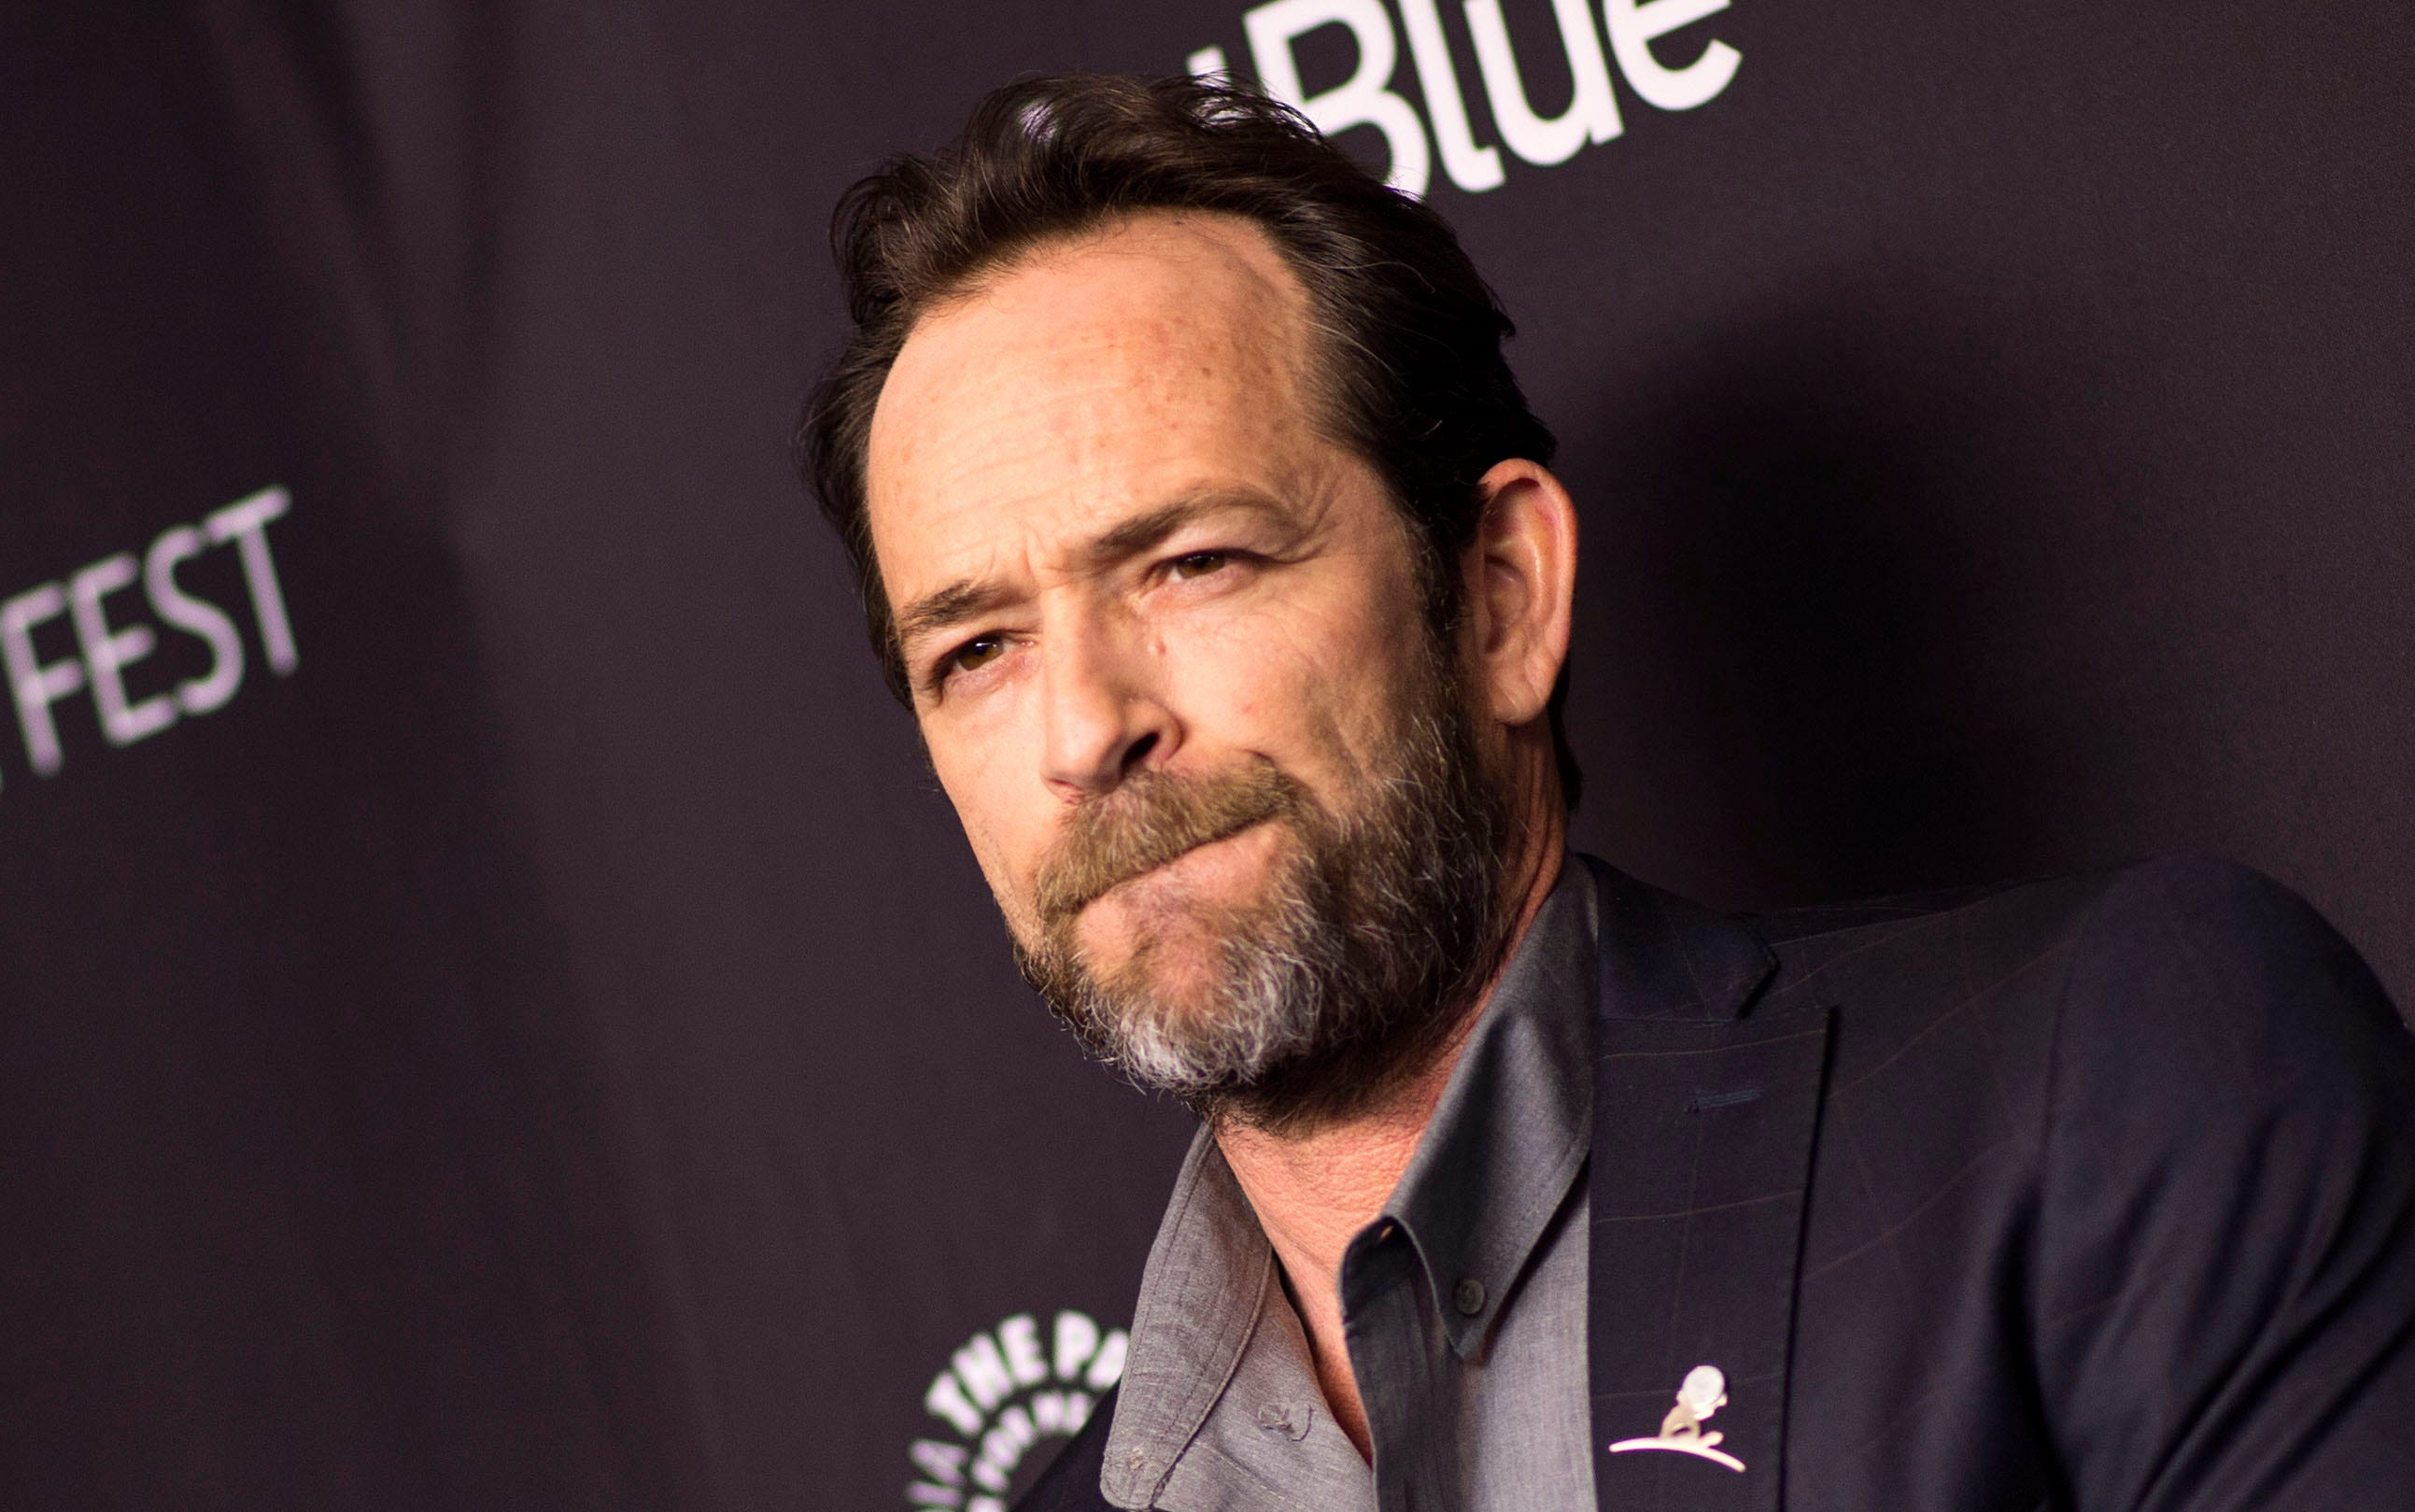 Luke Perry's son Jack breaks silence after exiting wrestling event: 'My heart is broken'